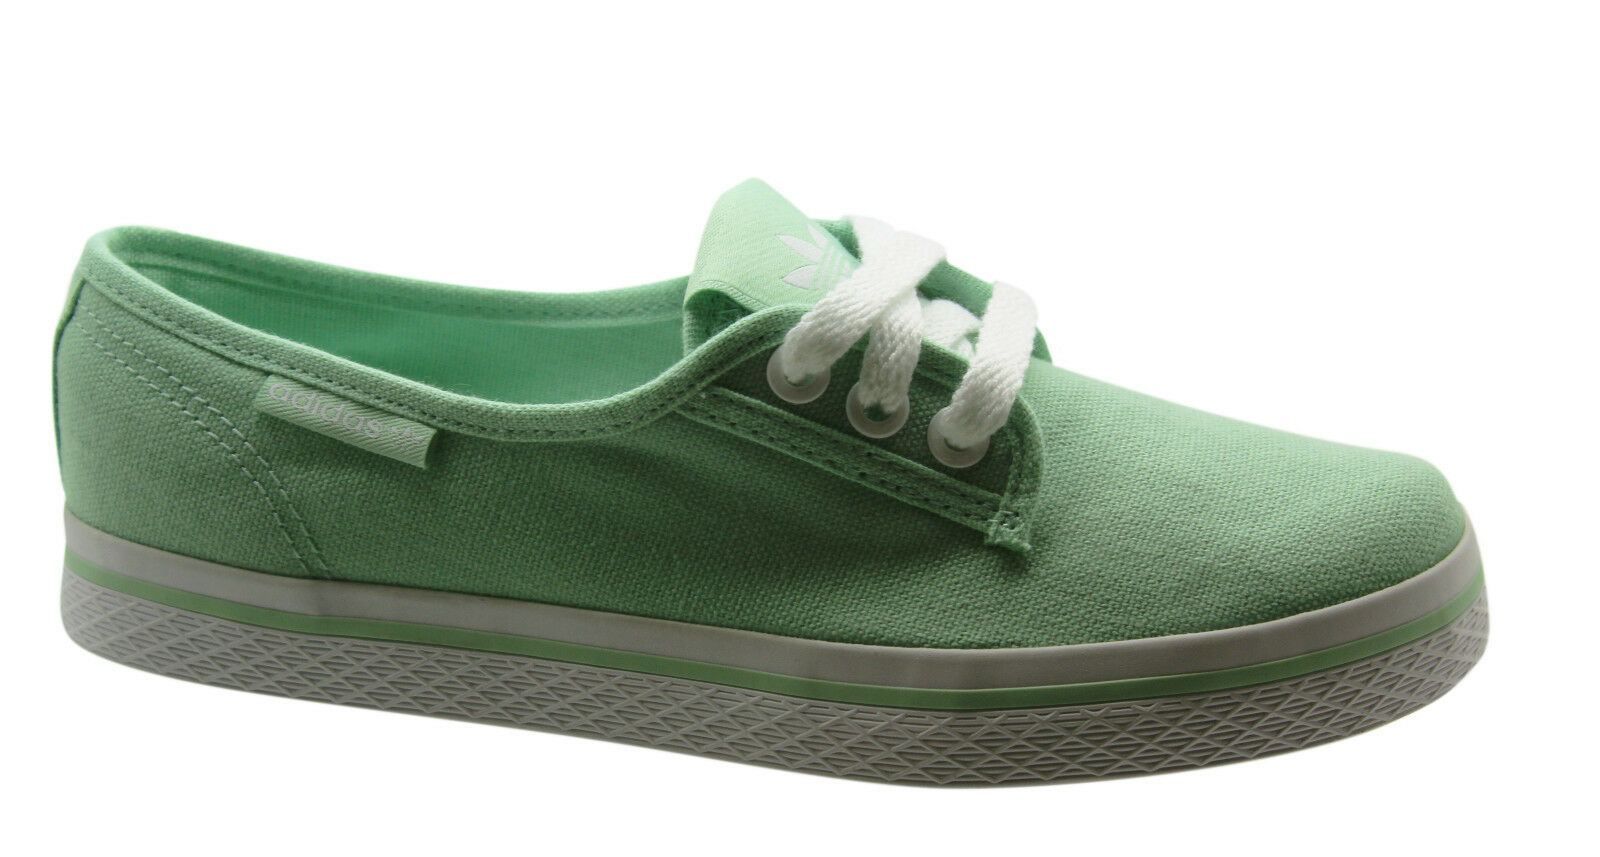 Adidas Originals Honey Plimsole Womens Trainers shoes Lace Green M19583 U104